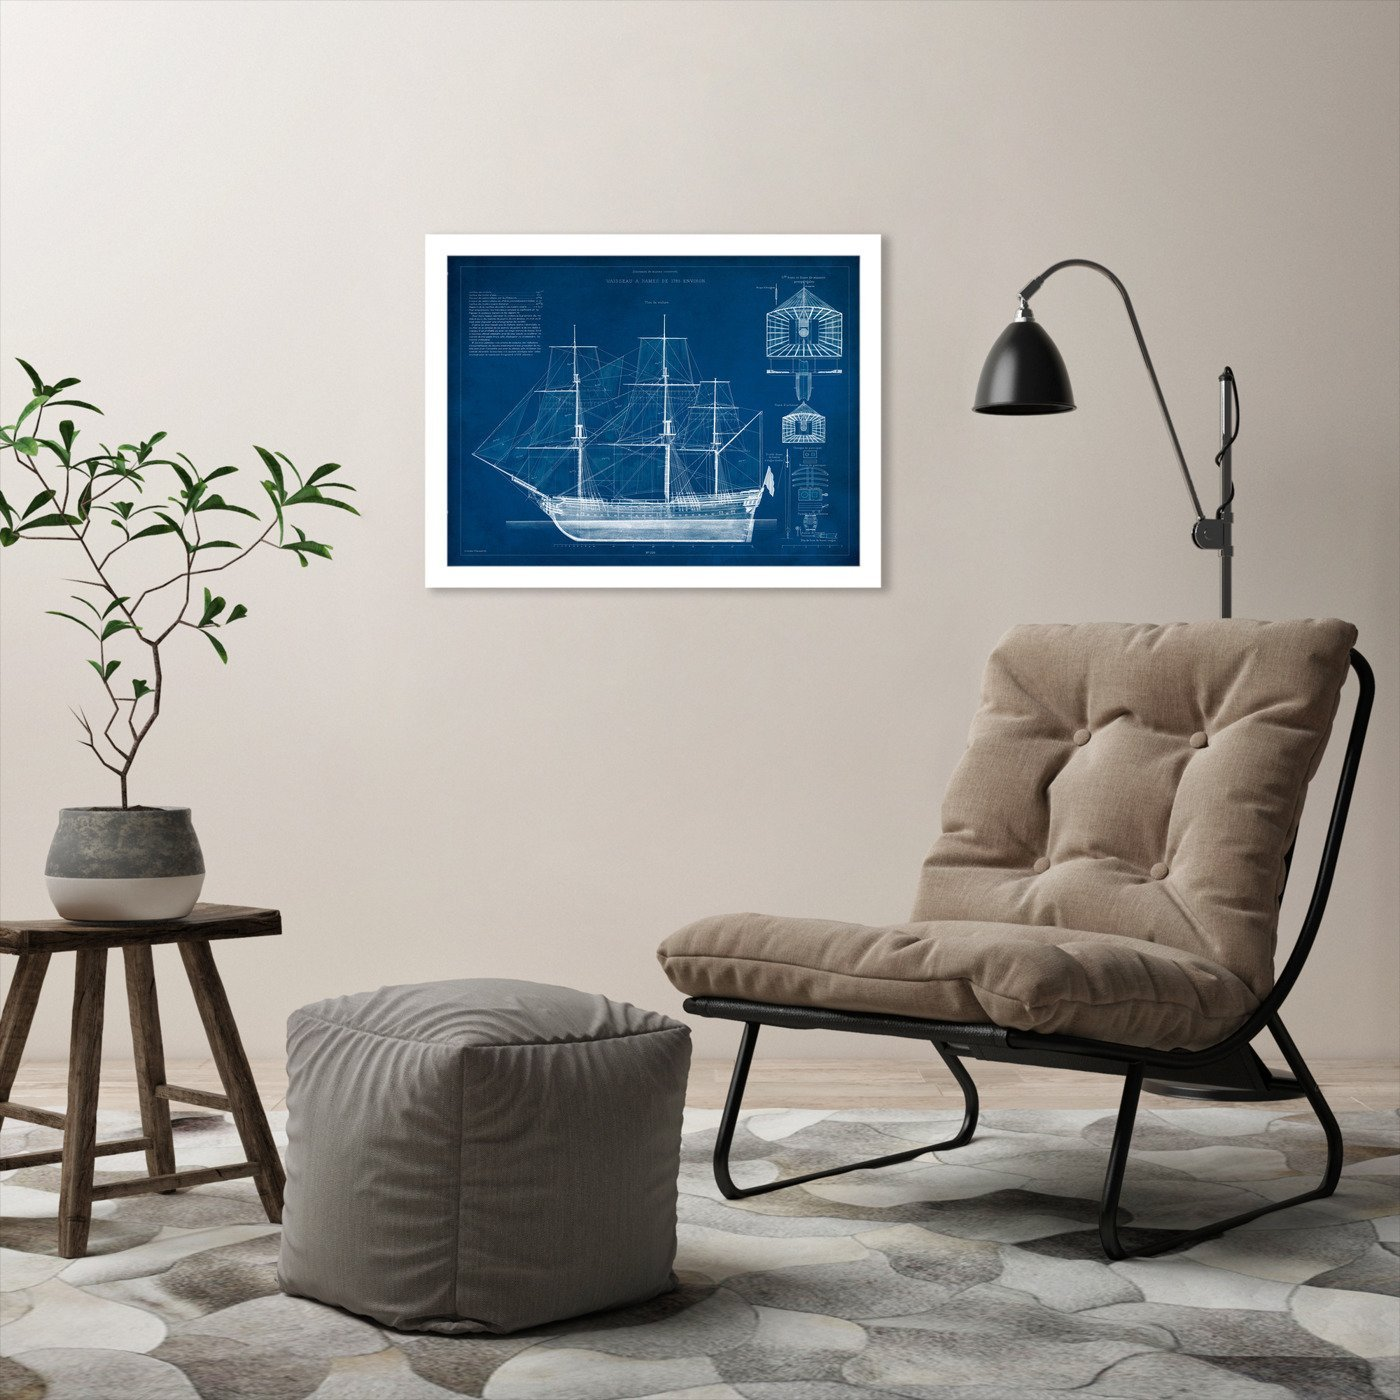 Antique Ship Blueprint IV by Vision Studio by World Art Group - White Framed Print - Wall Art - Americanflat